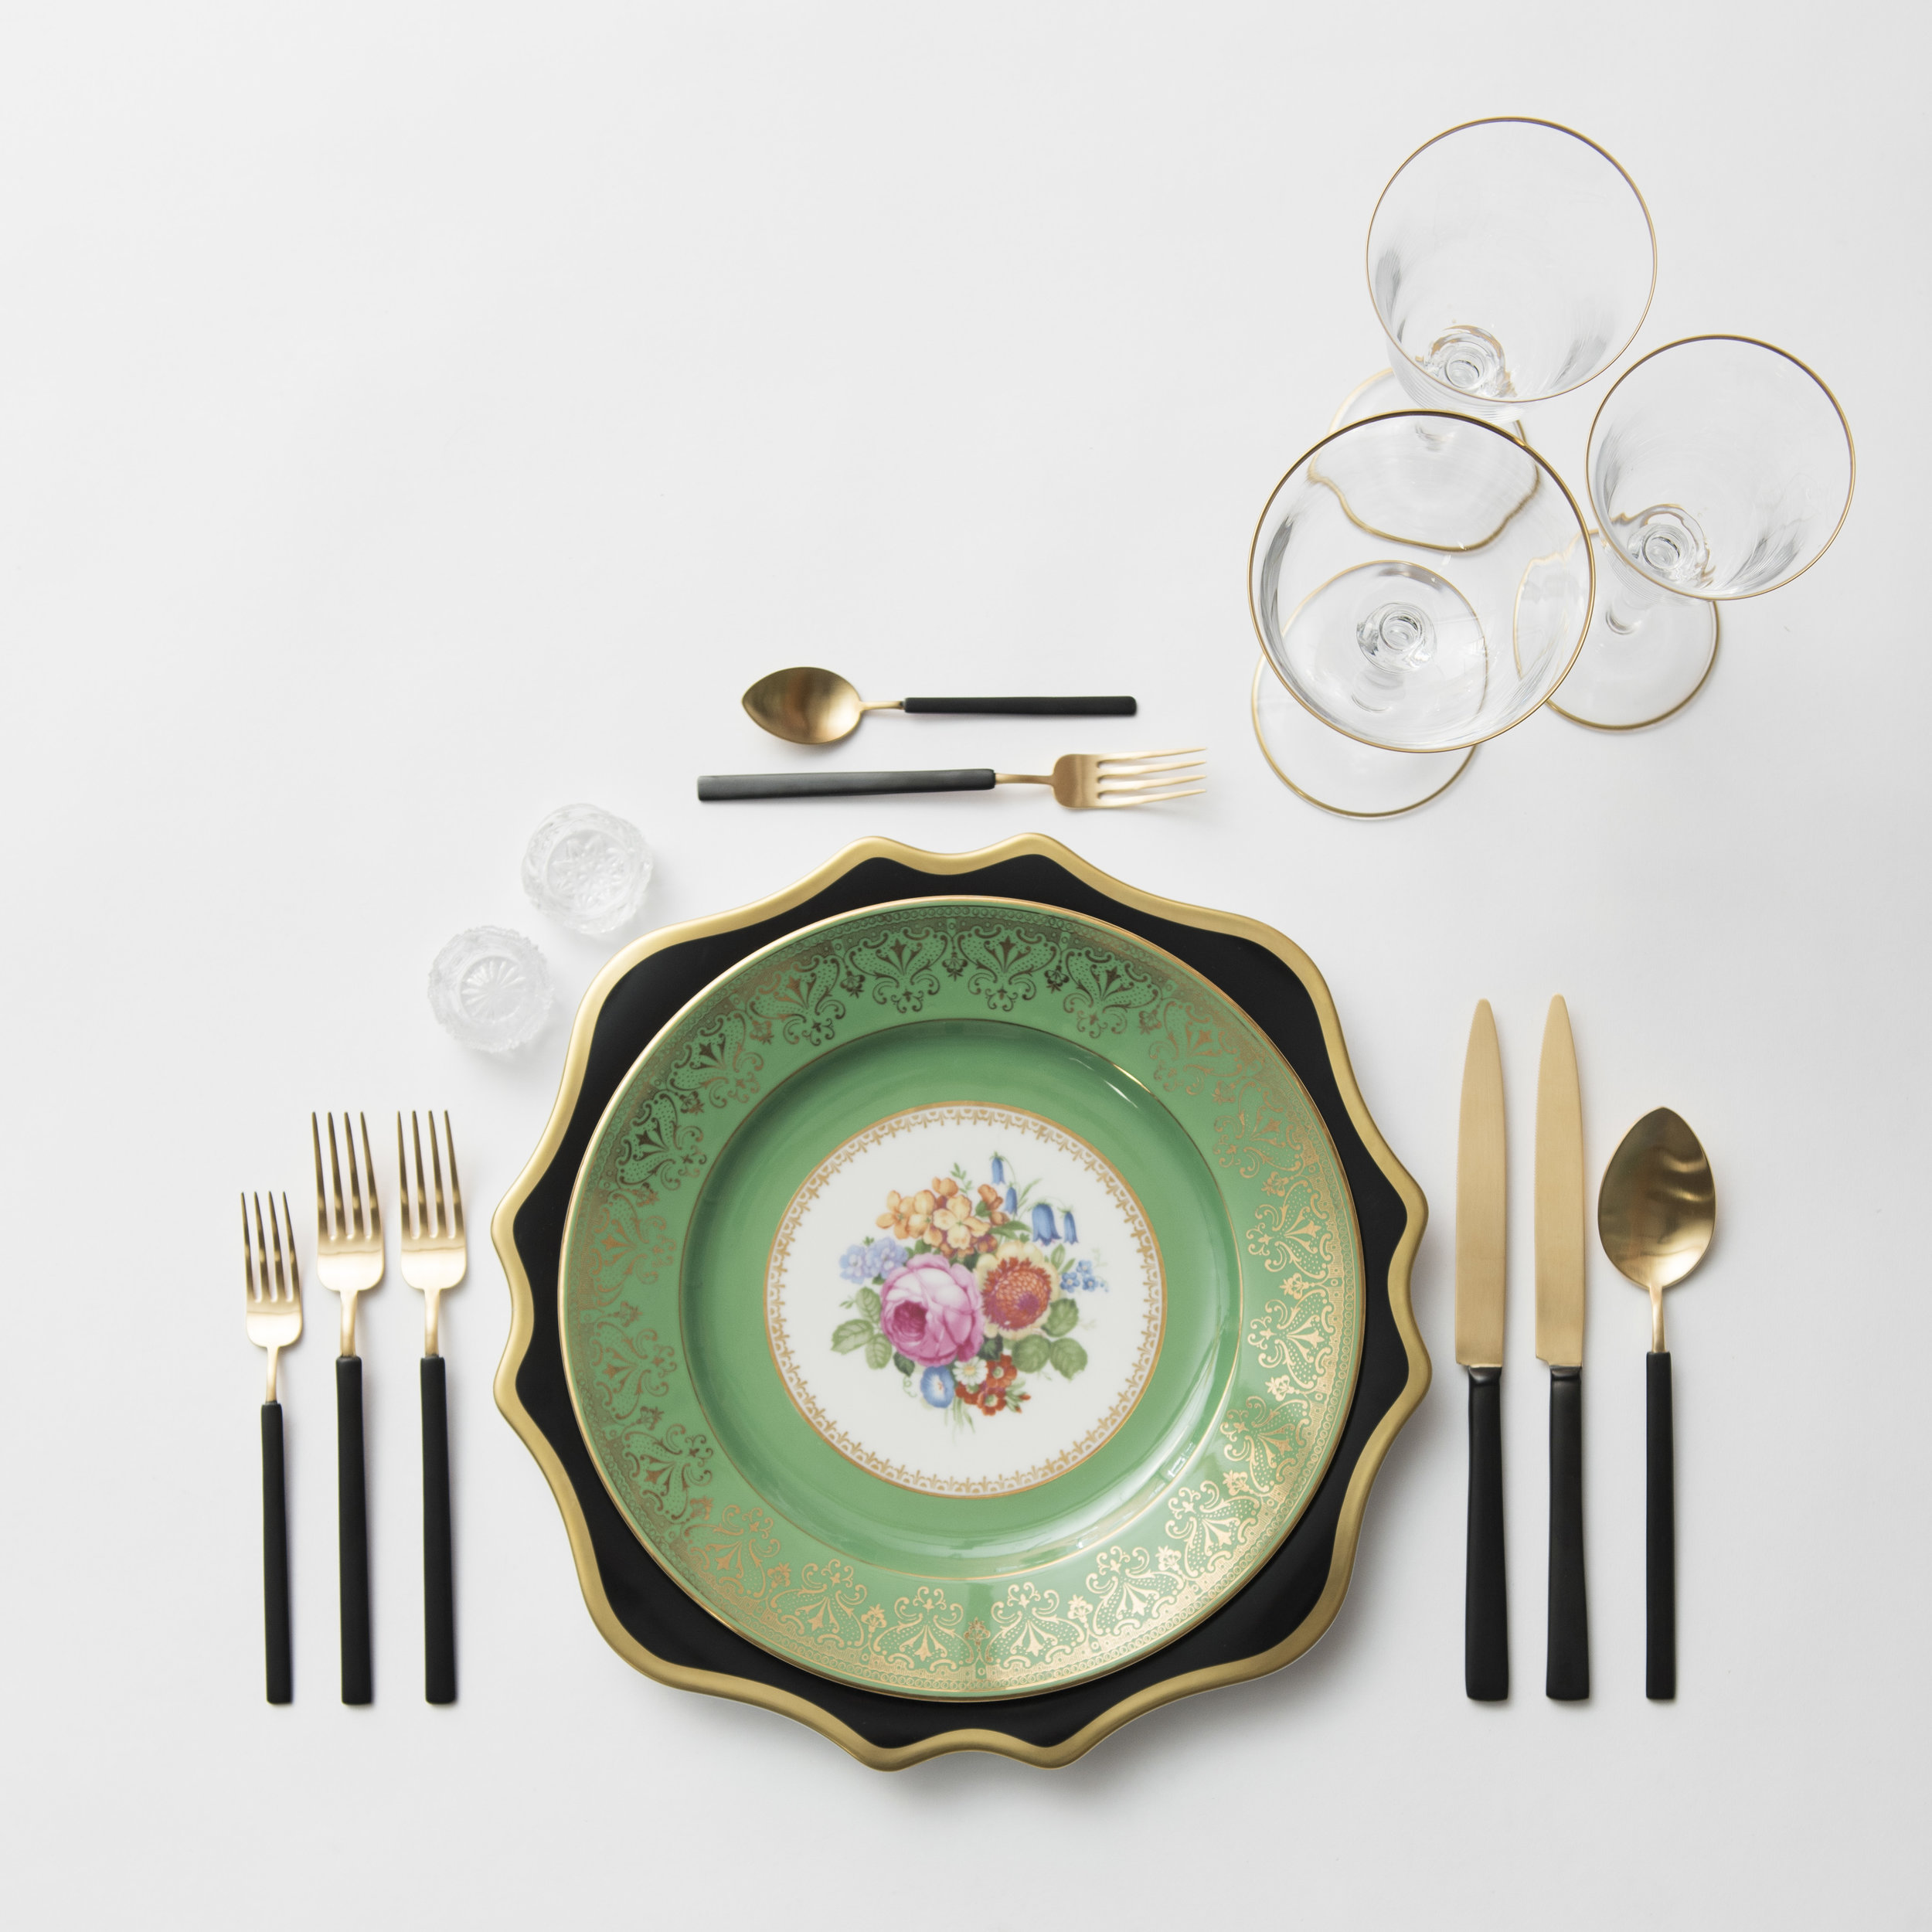 RENT: Anna Weatherley Chargers in Black/Gold + Green Botanicals Vintage China + Axel Flatware in Matte 24k Gold/Black + Chloe 24k Gold Rimmed Stemware + Antique Crystal Salt Cellars  SHOP: Chloe 24k Gold Rimmed Stemware